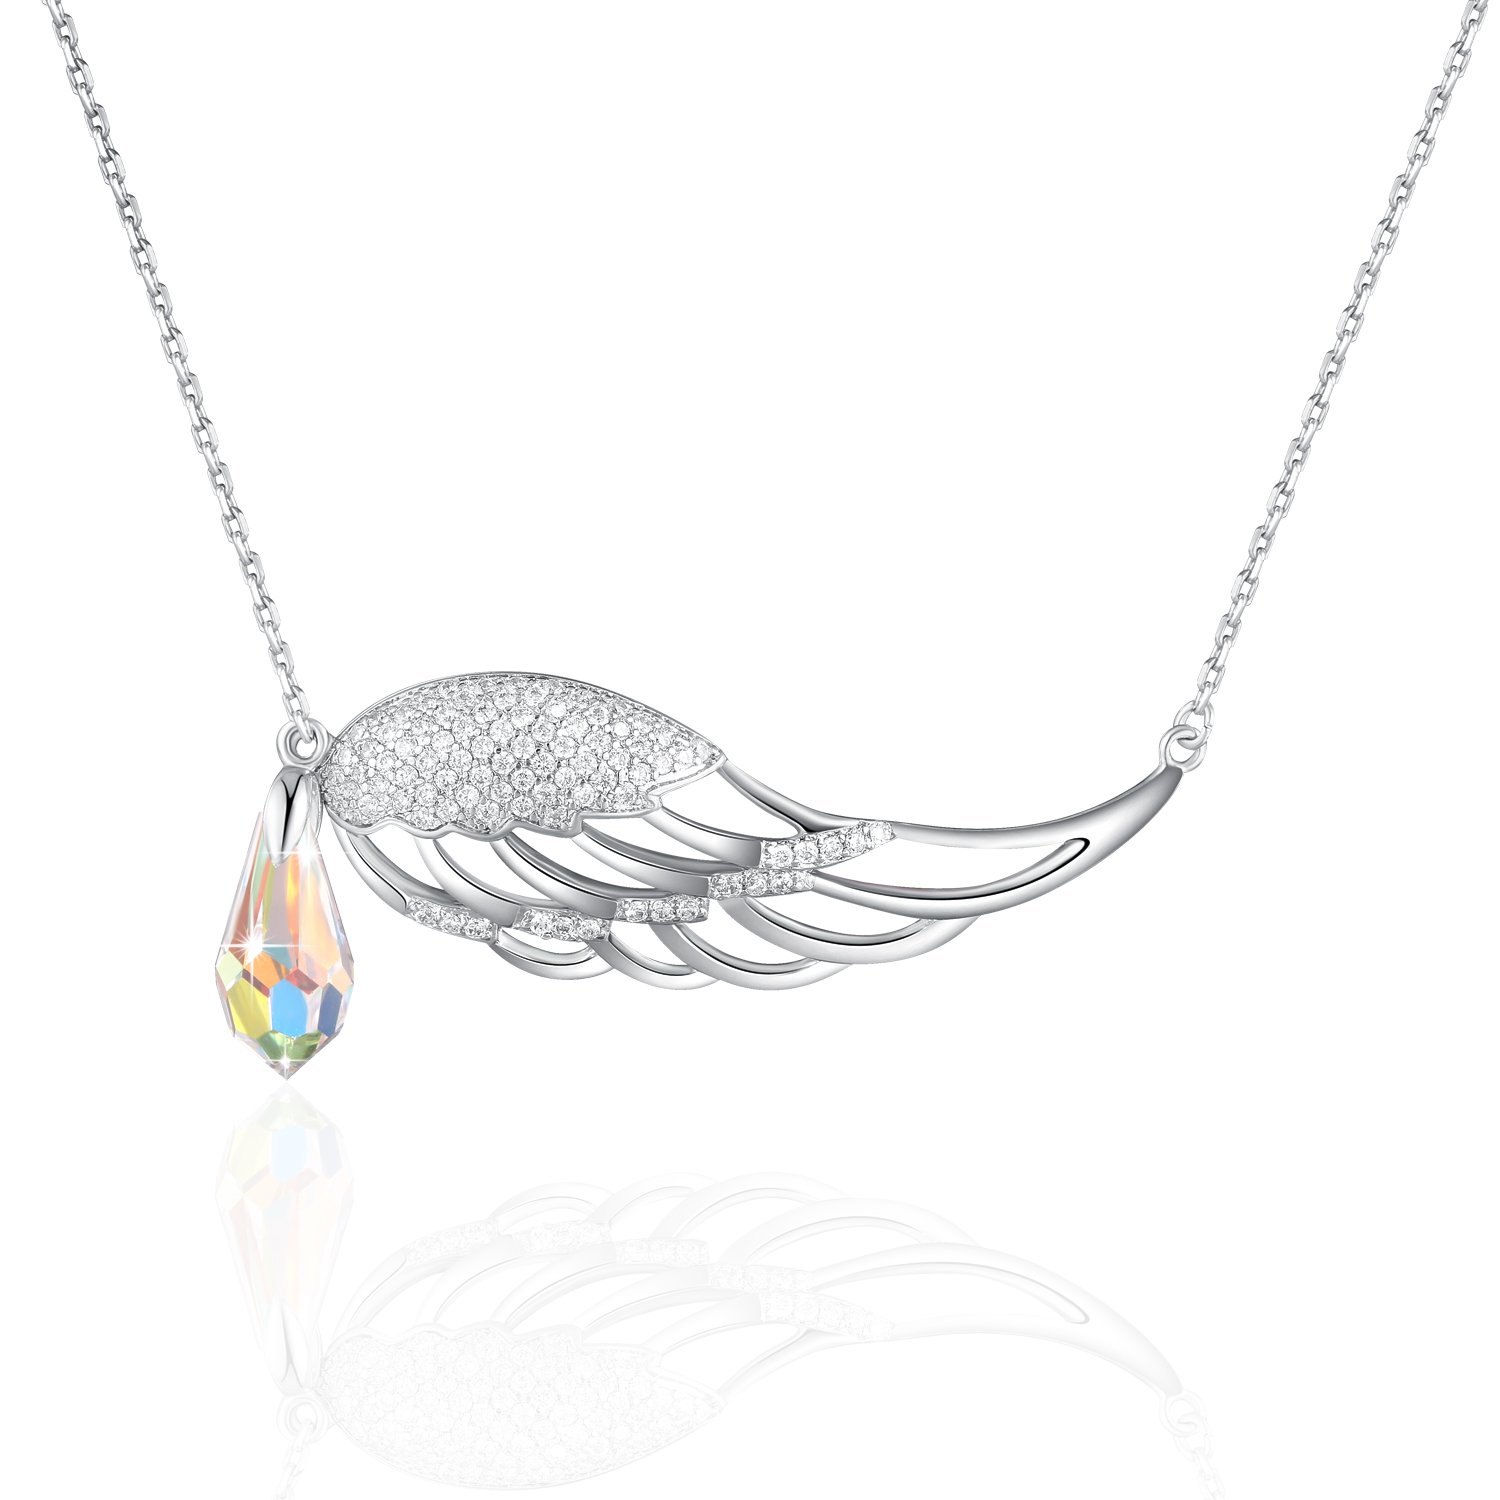 Angel Wings Necklace PLATO H Guardian Angel Wing Drop Pendant Necklace with Swarovski Crystal for Women Fashion jewelry, Bithday Gifts, Love Angle Necklace For Mom, Guardian Wings Crystal Drop Necklac